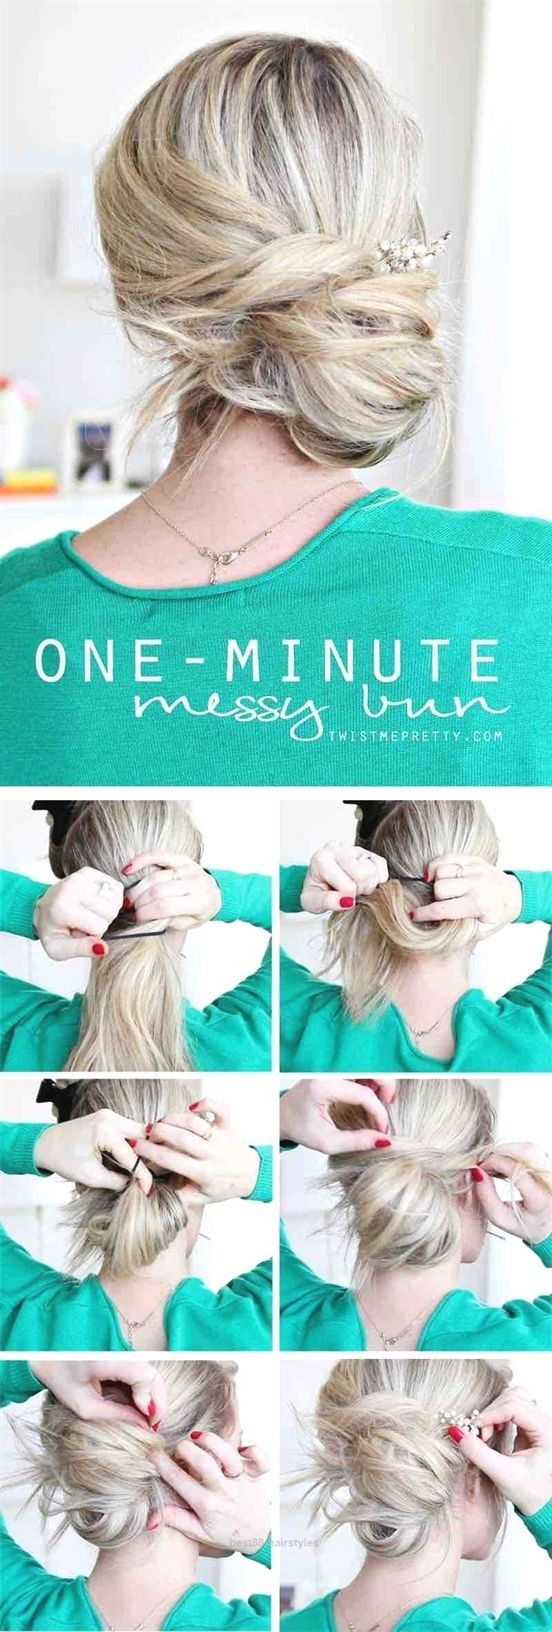 Neat easy hairstyles for work u one minute messy bun u quick and